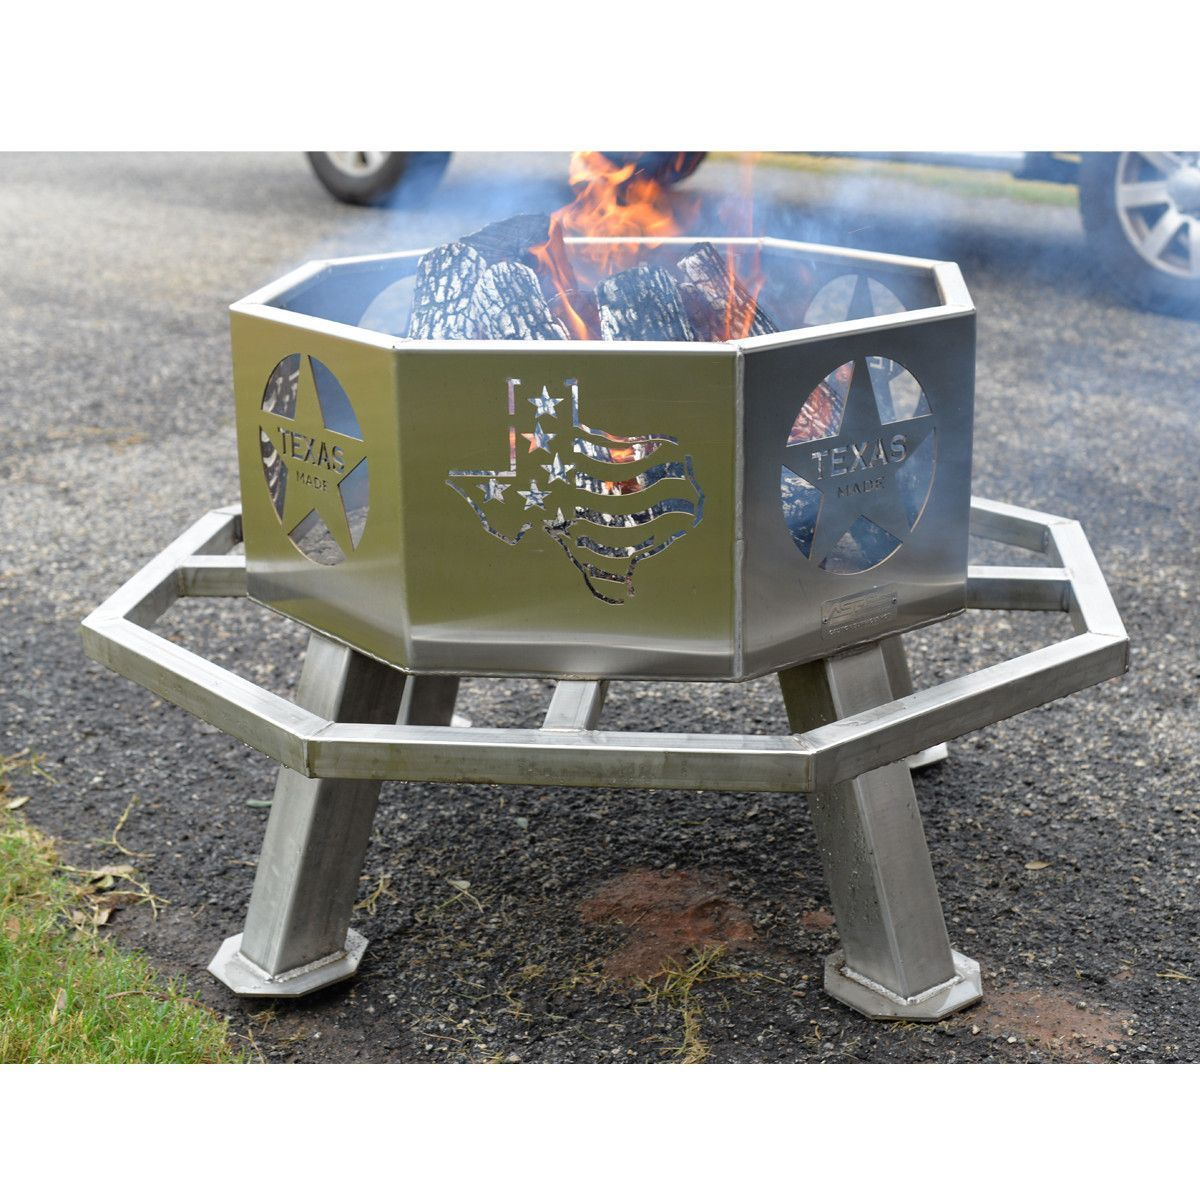 Stainless Steel 28 Texas Theme Fire Pit Bbq Pit For Sale Fire Pit Essentials Metal Fire Pit Outdoor Fire Pit